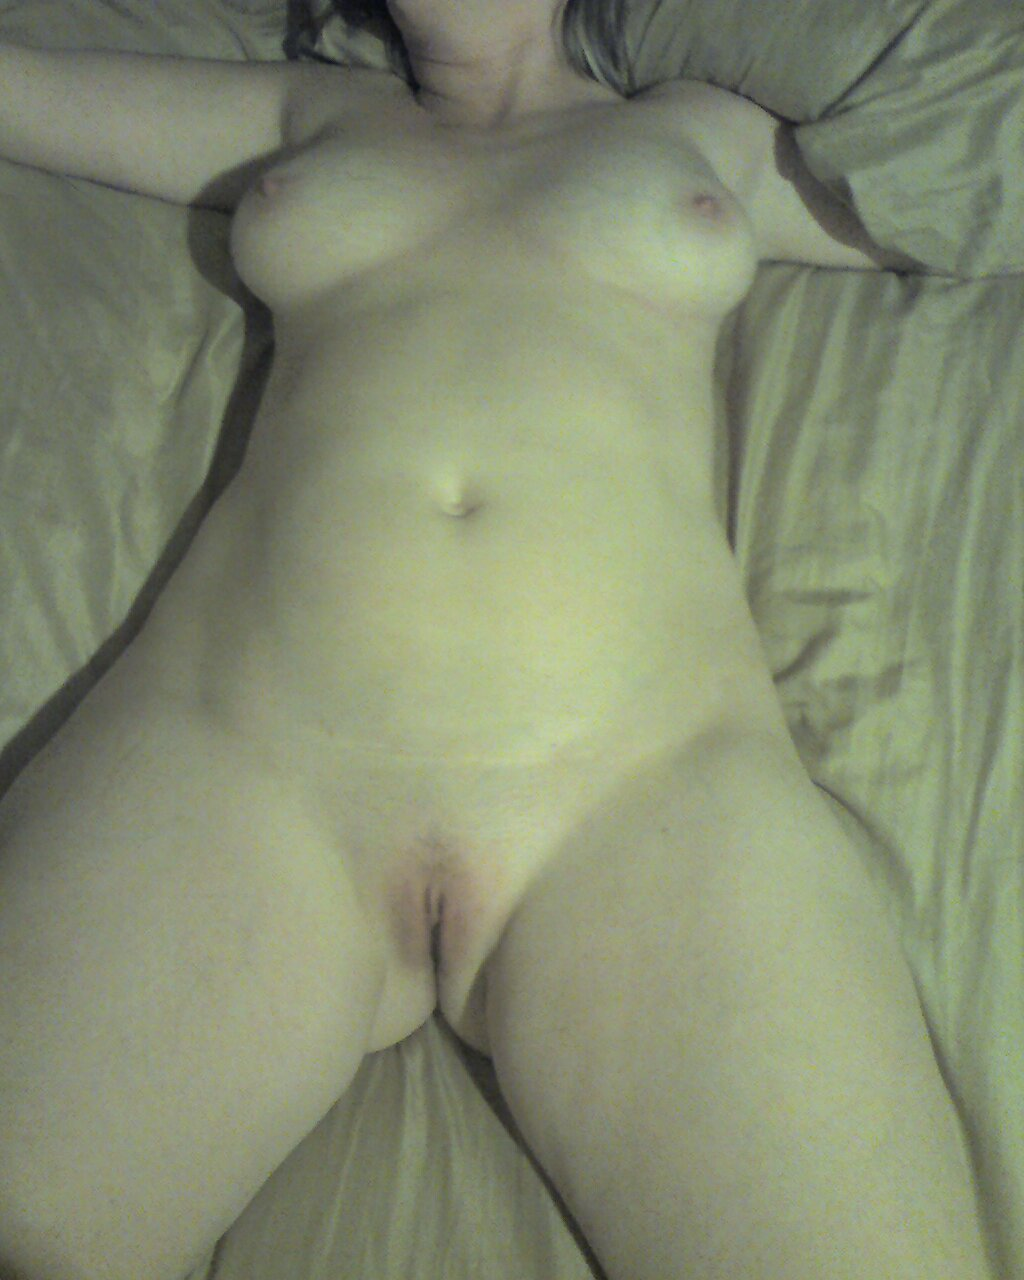 nude wife cellphone pic